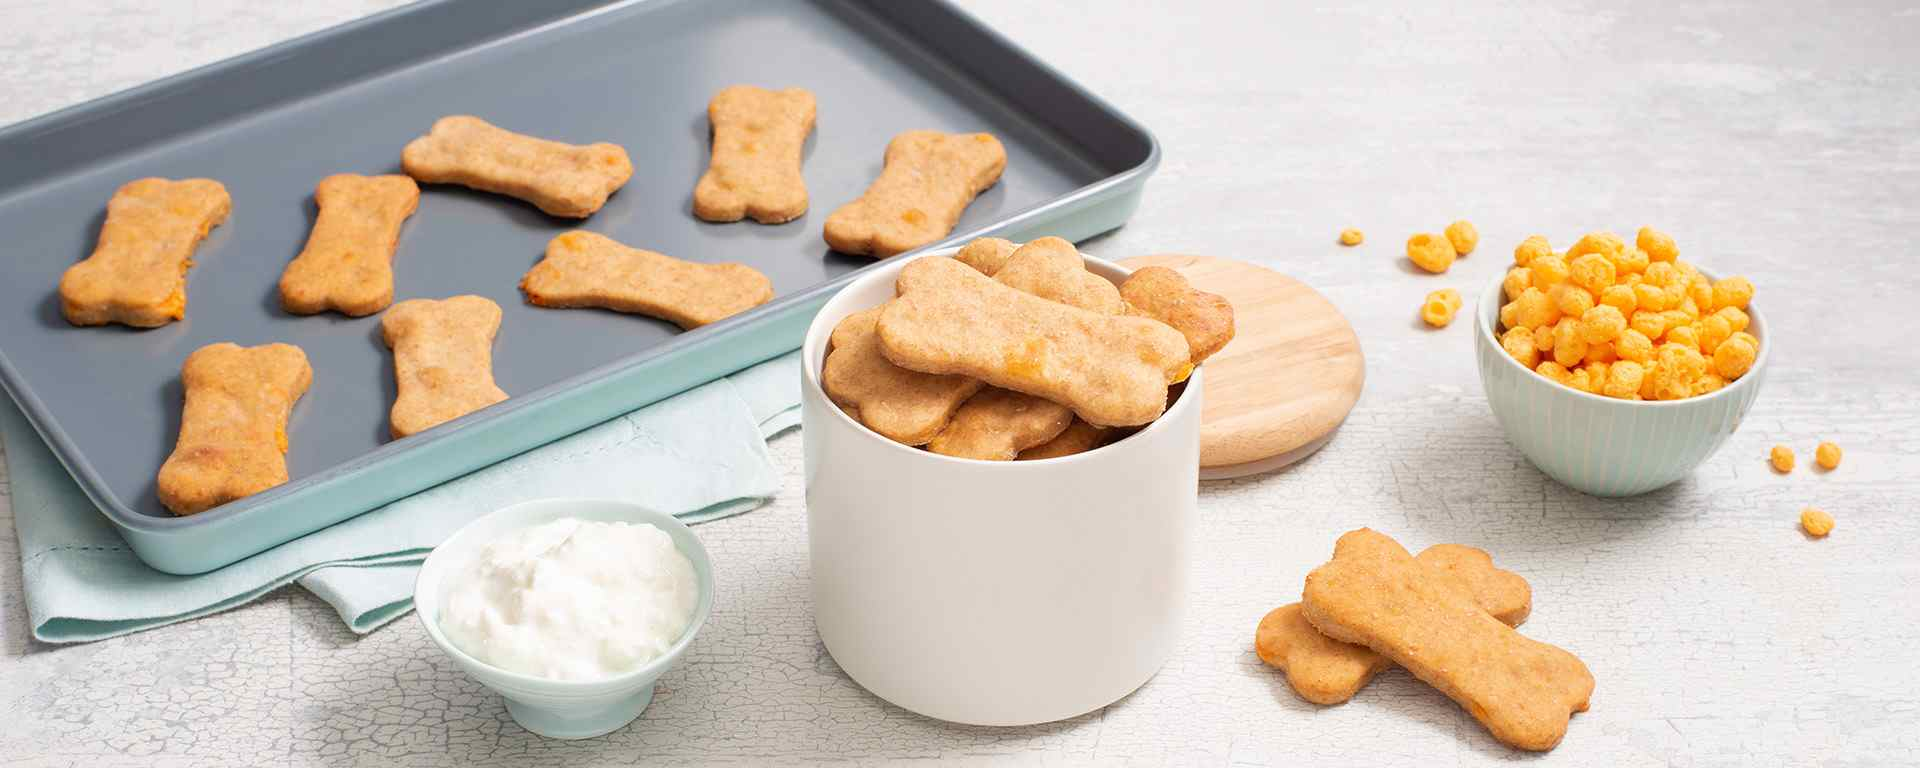 Photo for - Cheesy Peanut Butter Dog Biscuits